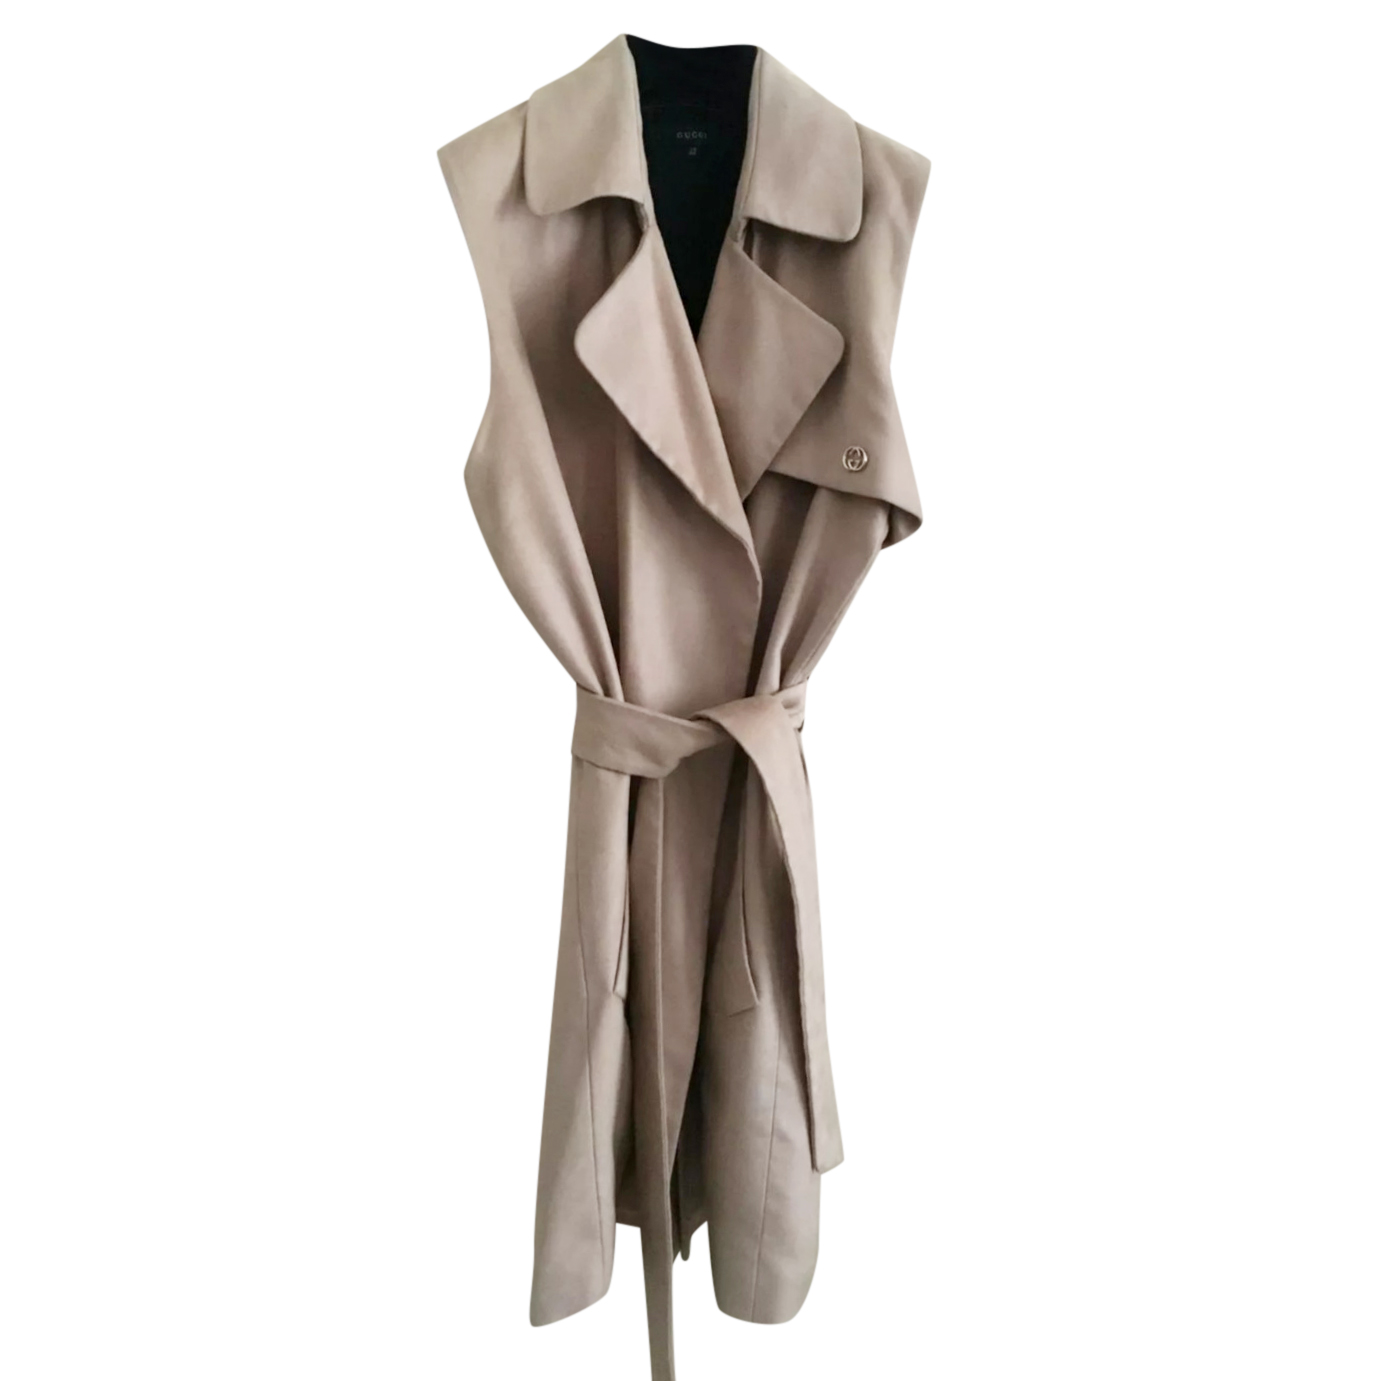 Gucci Beige Sleeveless Trench Coat